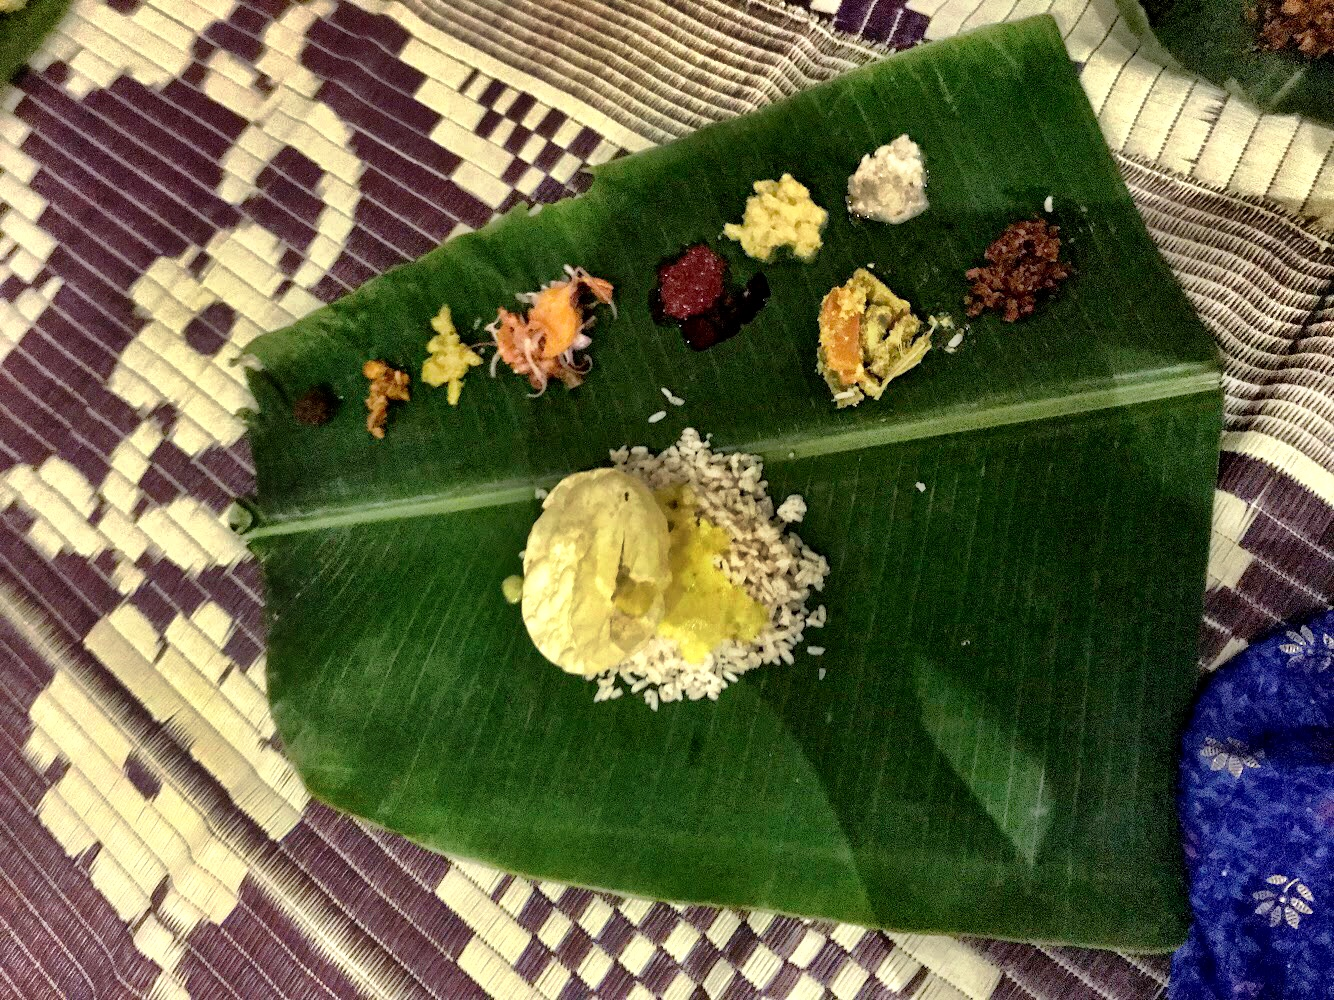 Thali, presented on this banana leaf, consists of small bites of different dishes, much like tapas